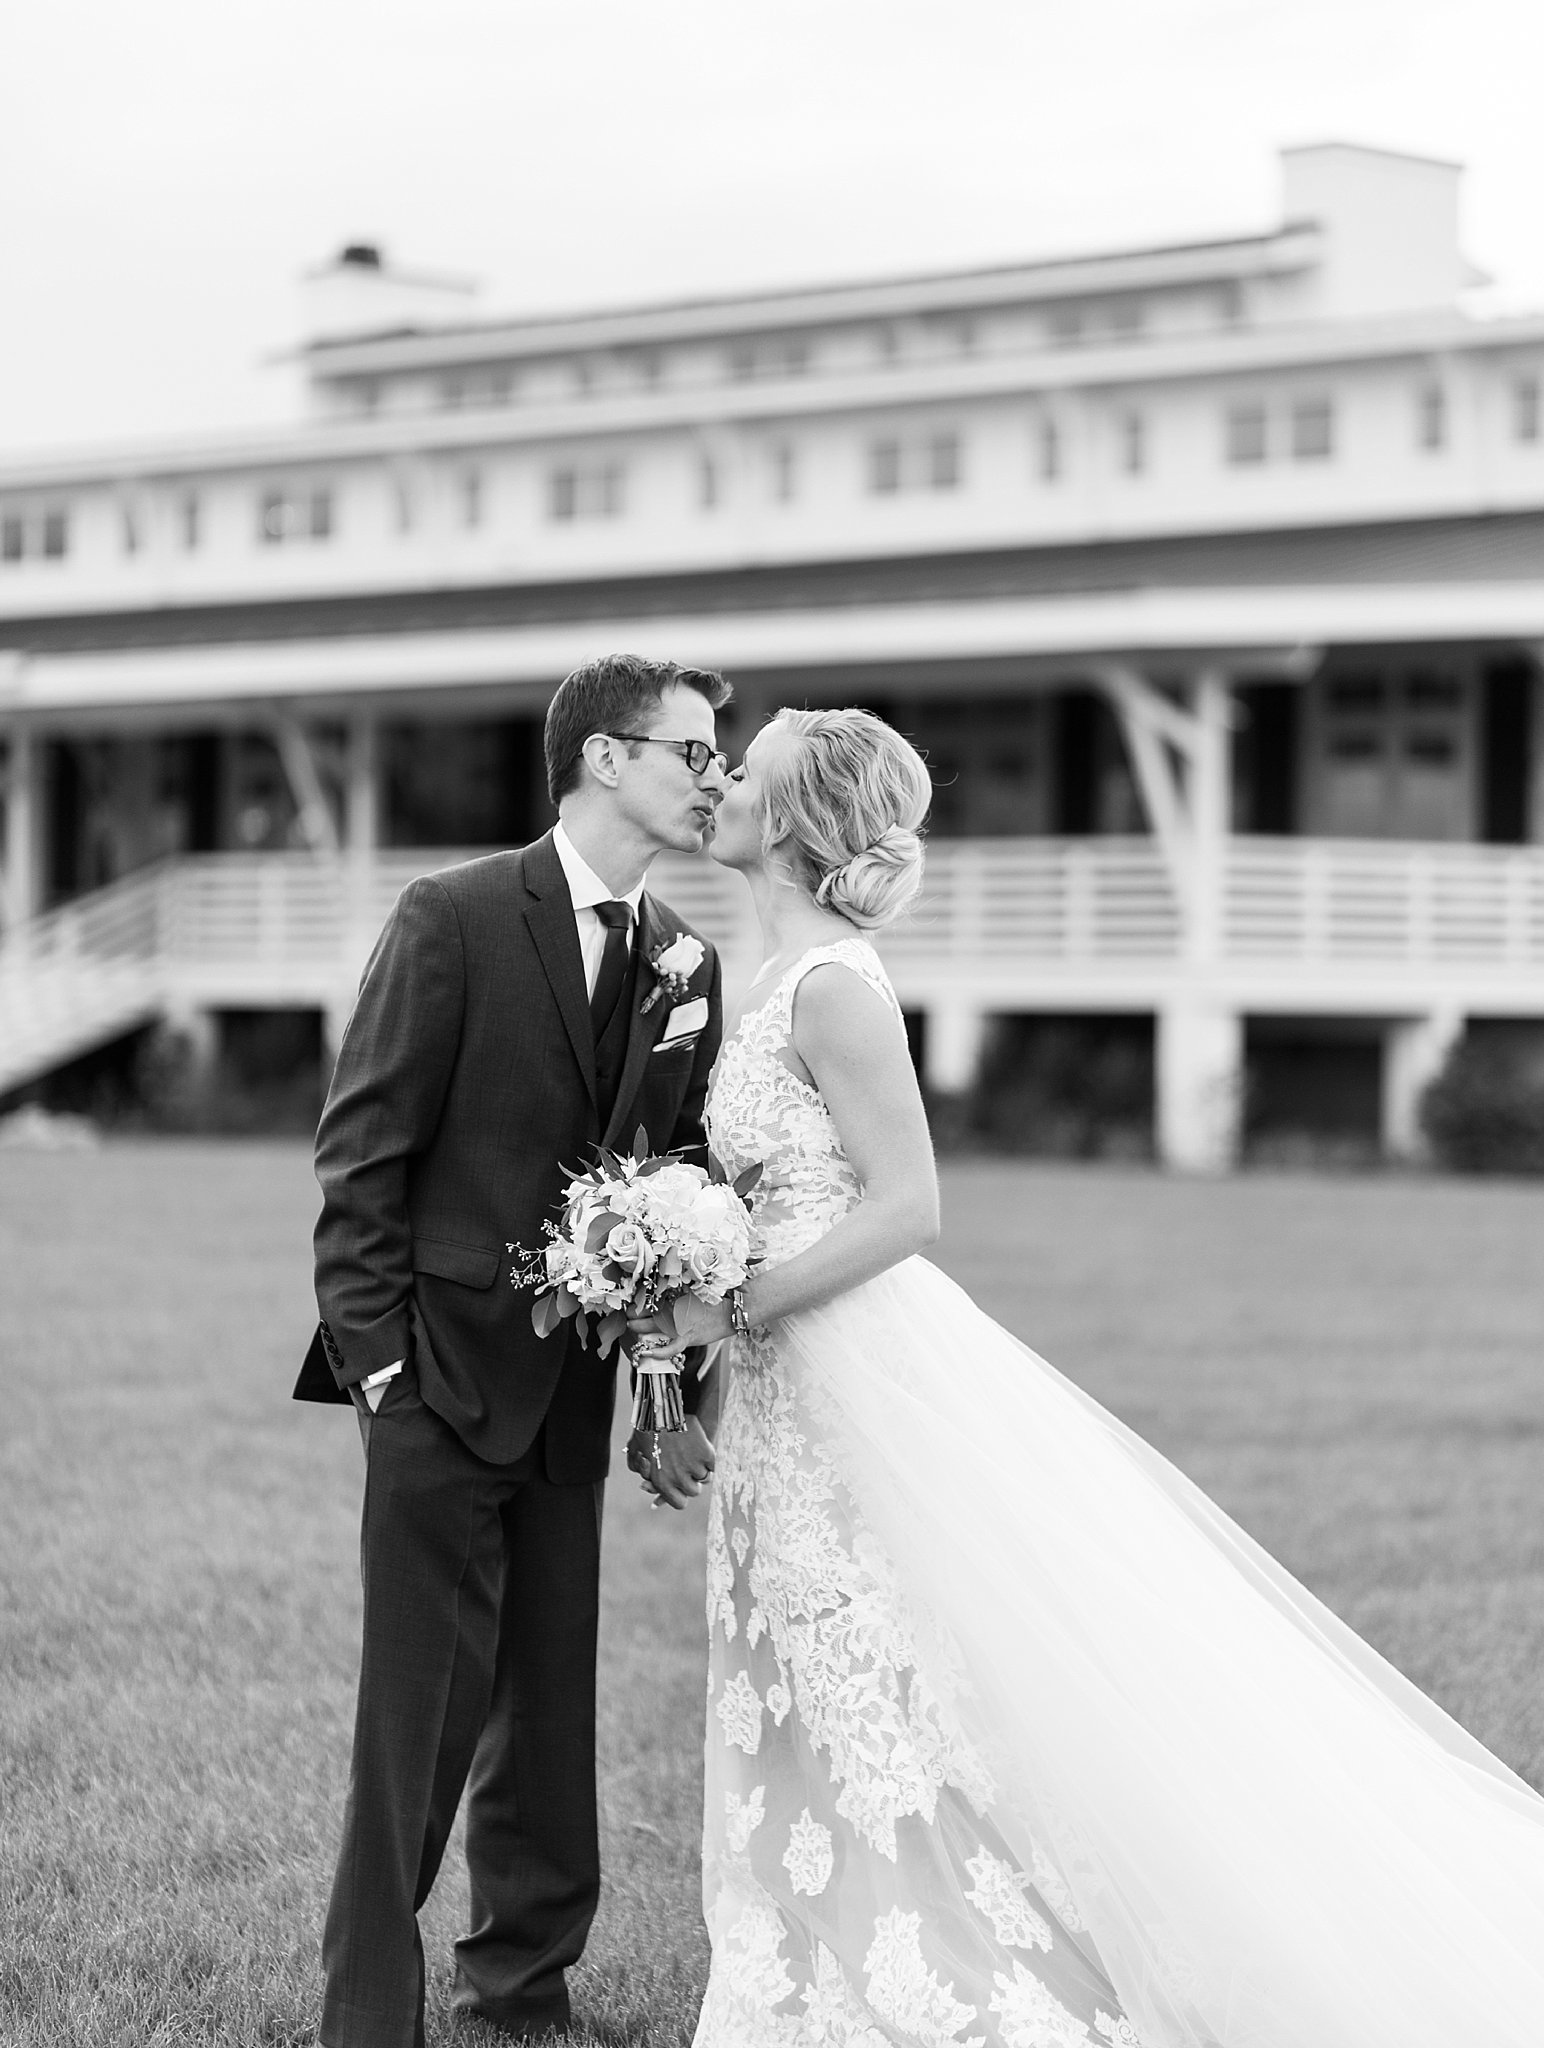 VUpper Shirley Vineyards Wedding Photographer - Virginia Wedding Photographer